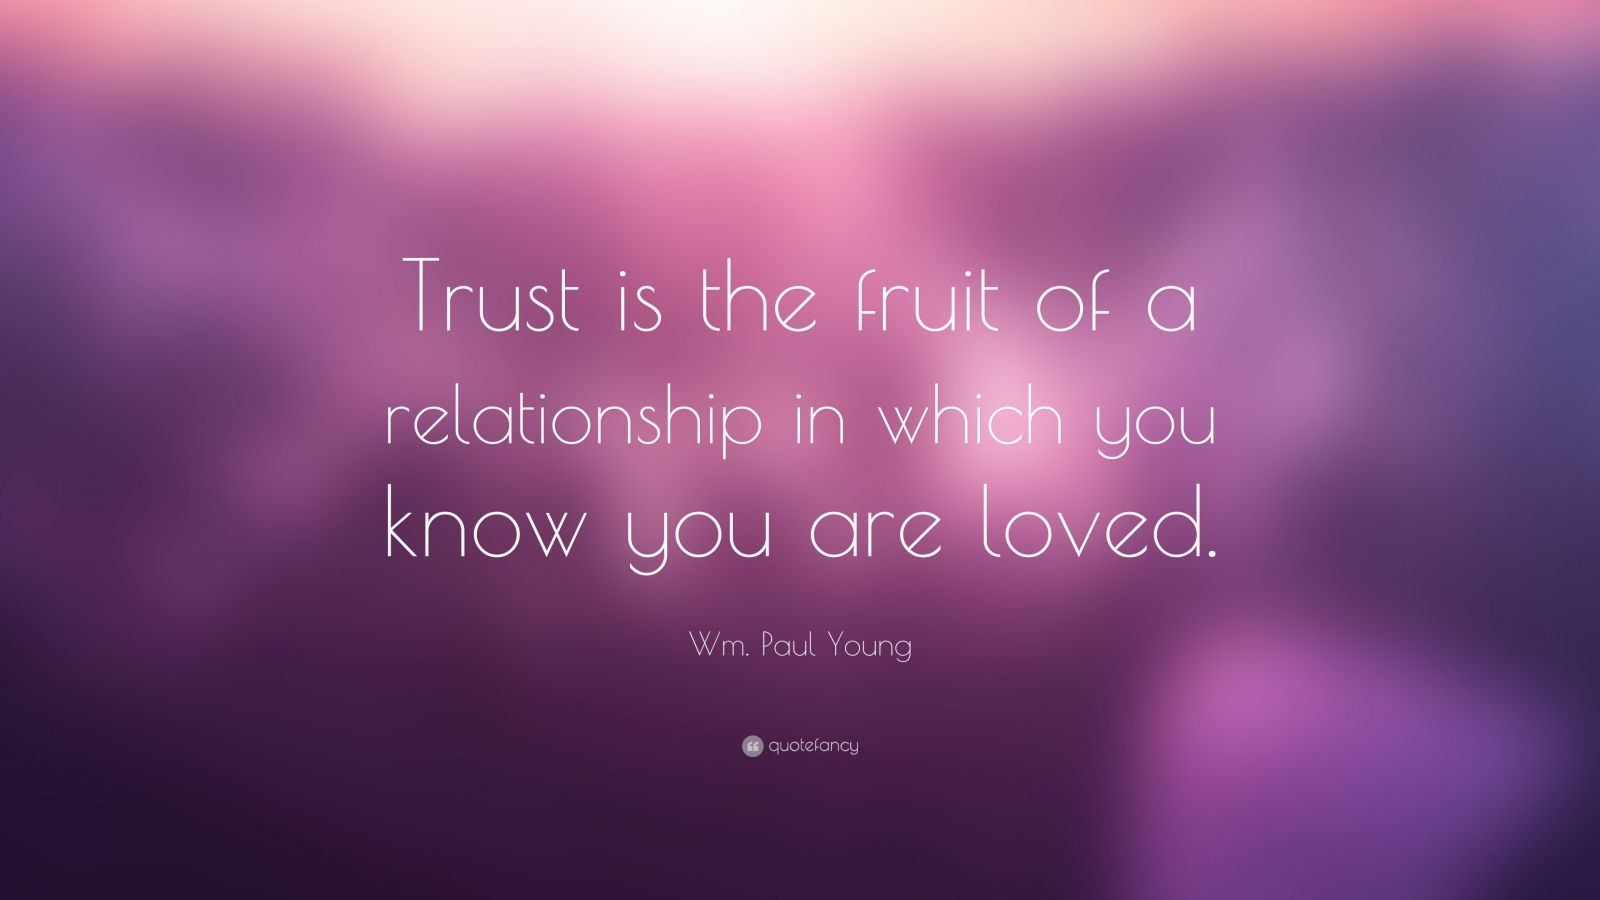 Relationship Quotes (58 wallpapers) - Quotefancy